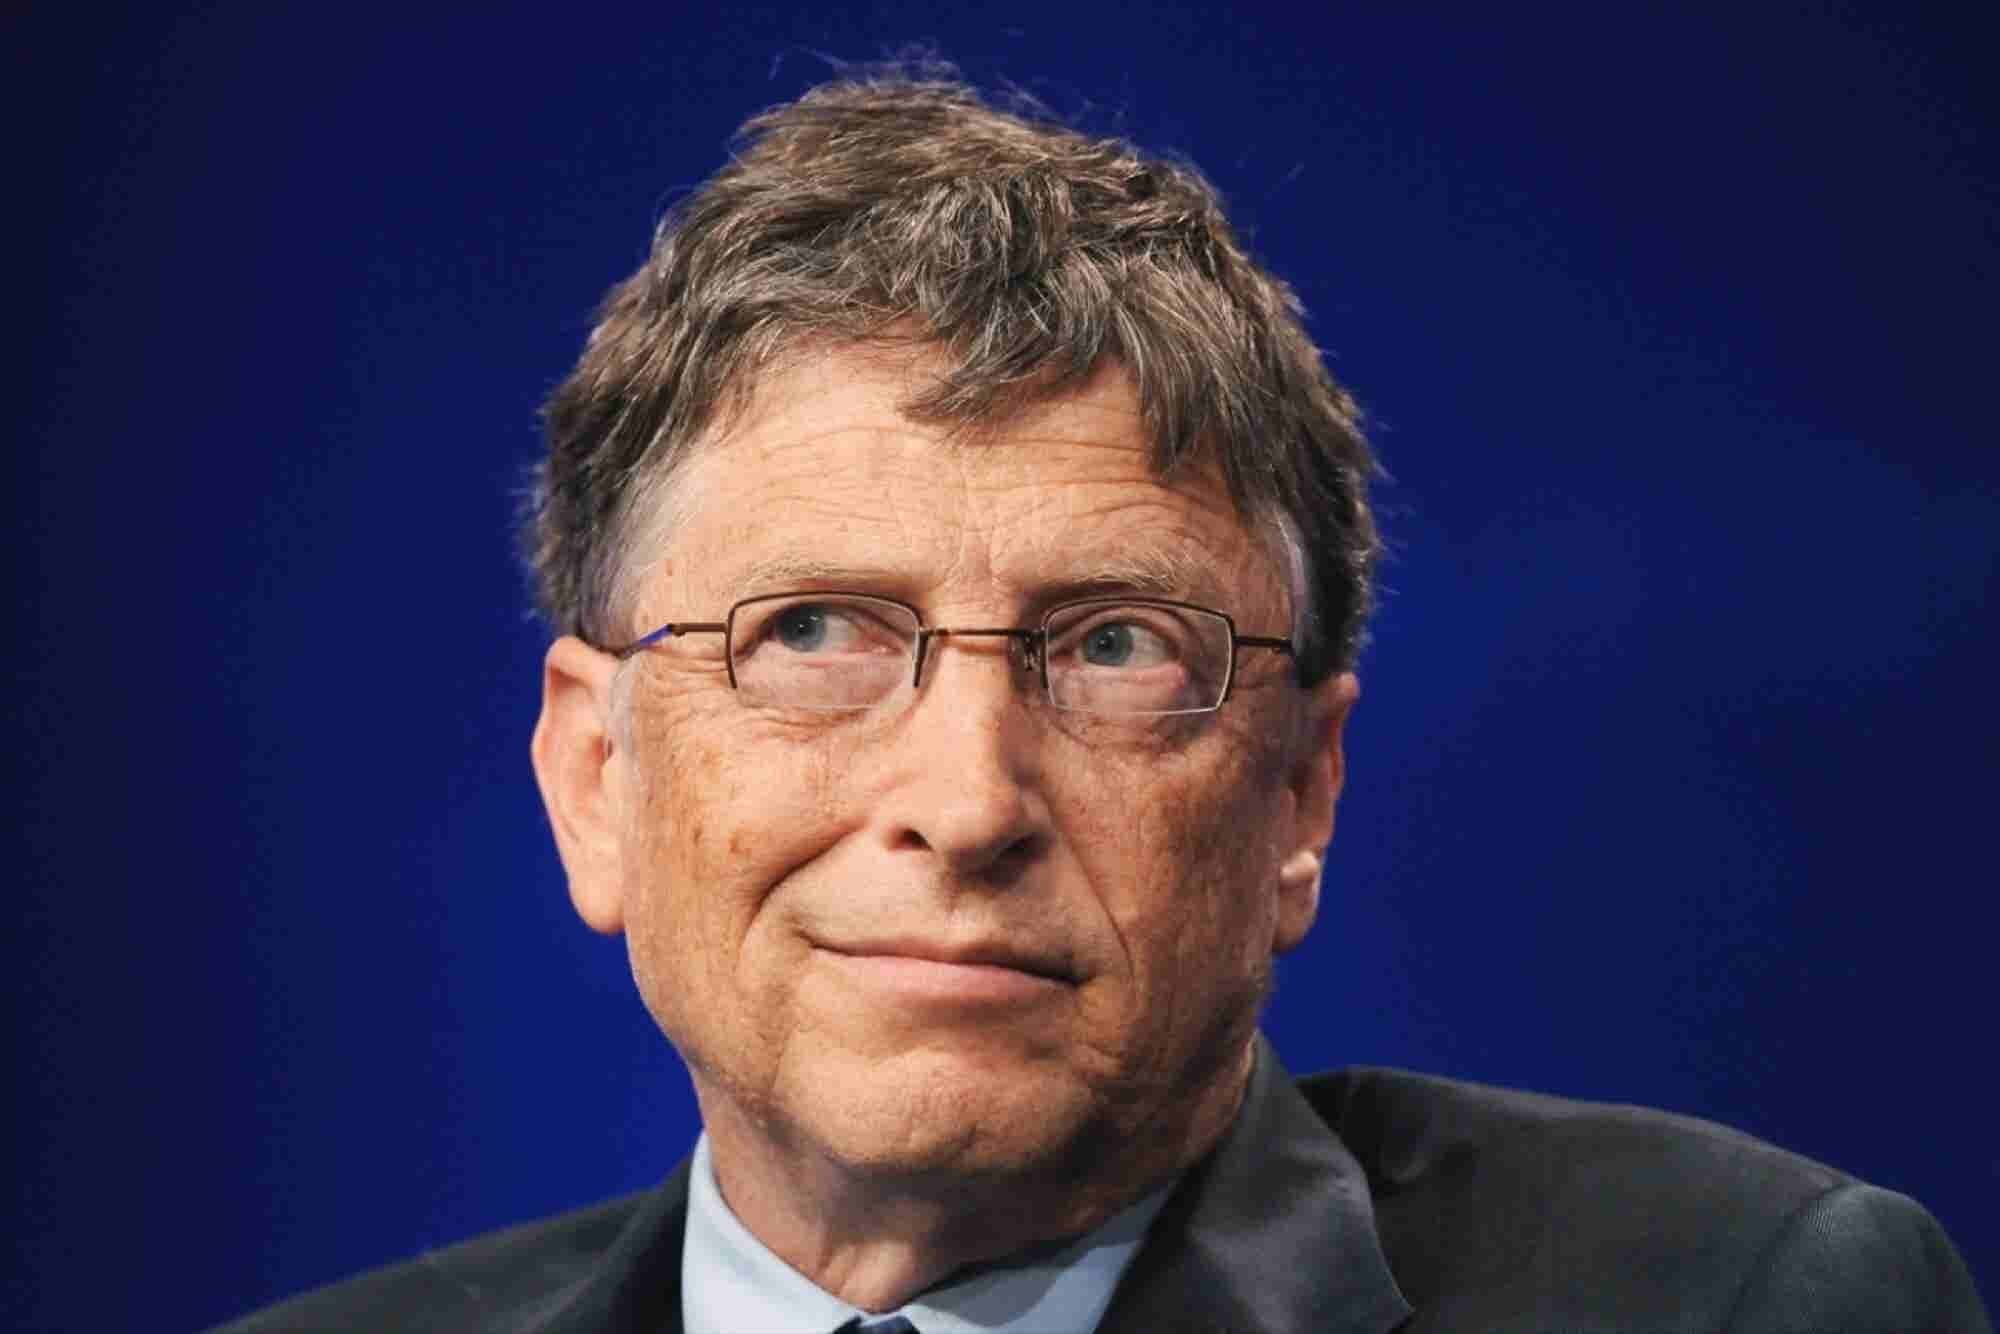 Bill Gates Goes Viral After Tweeting Dance Move